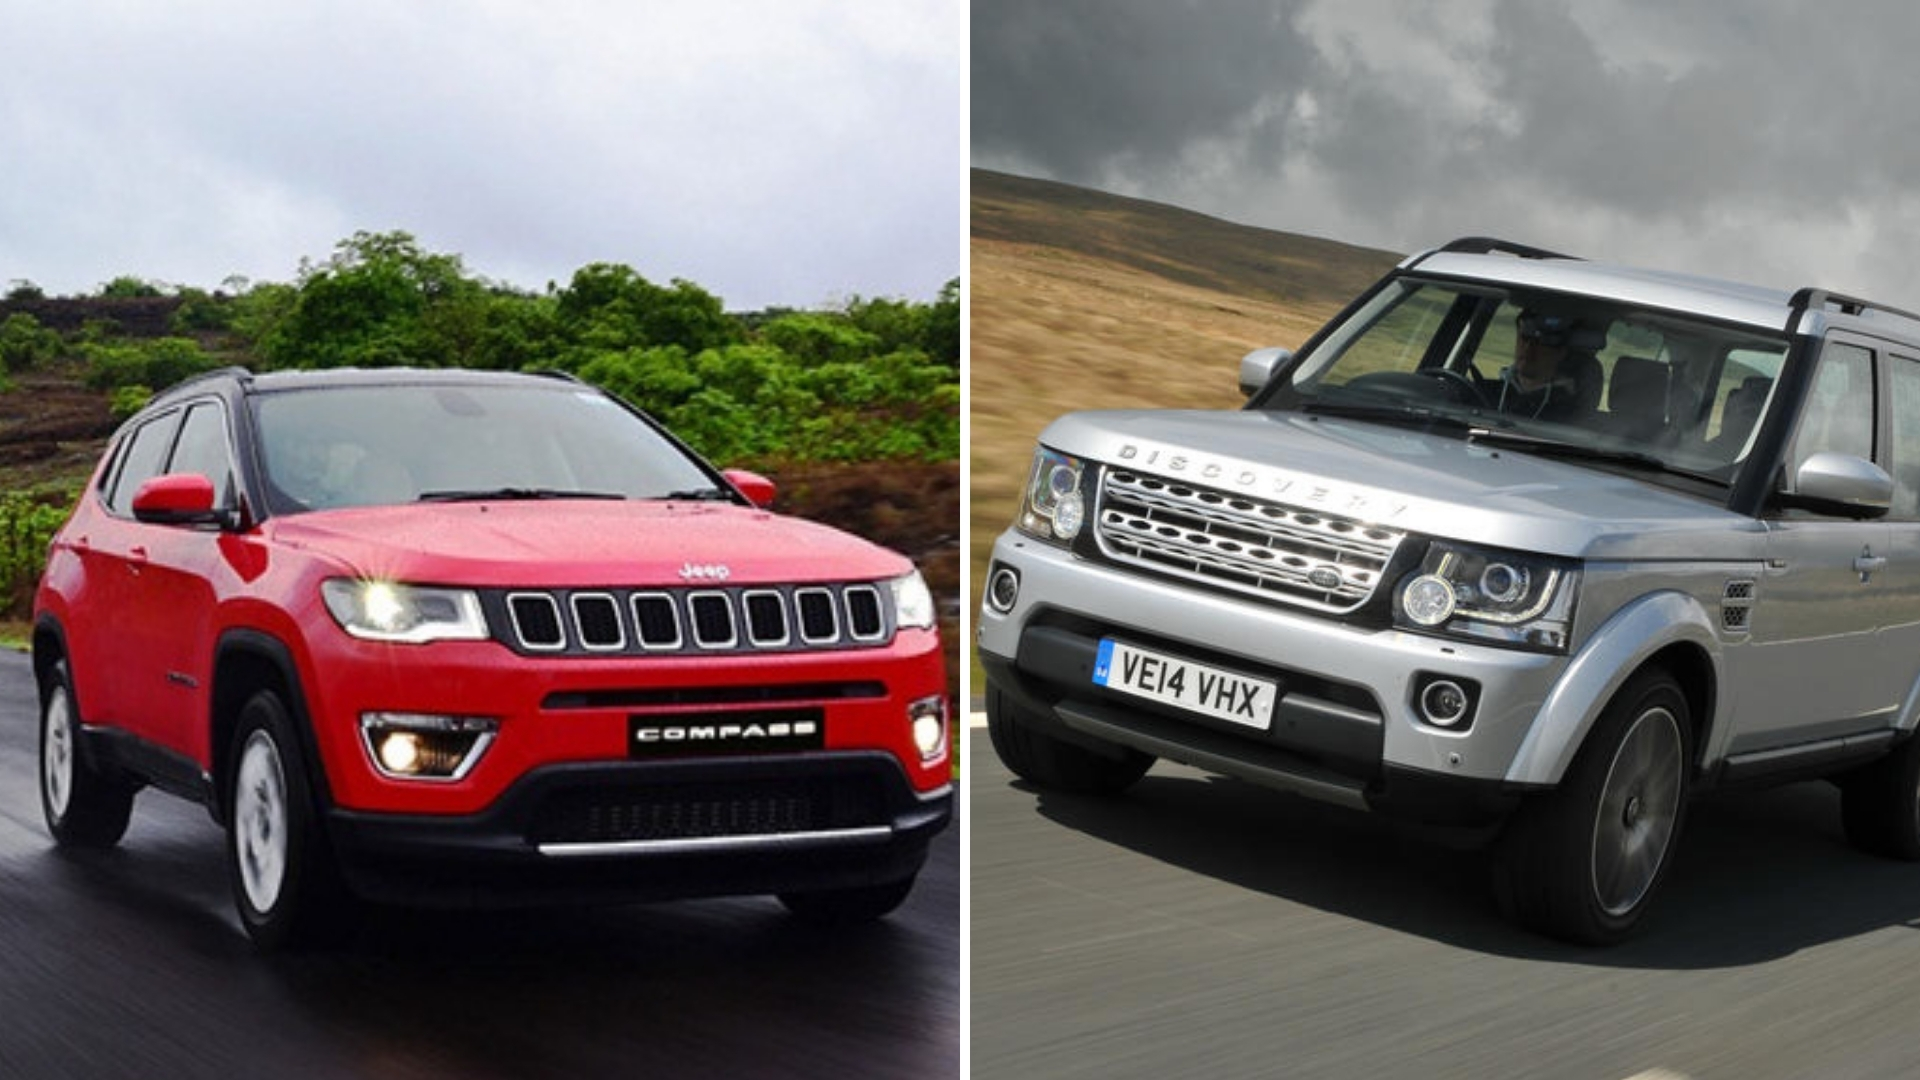 Fiat & Jaguar Land Rover Issue Recall Over Emission Issues